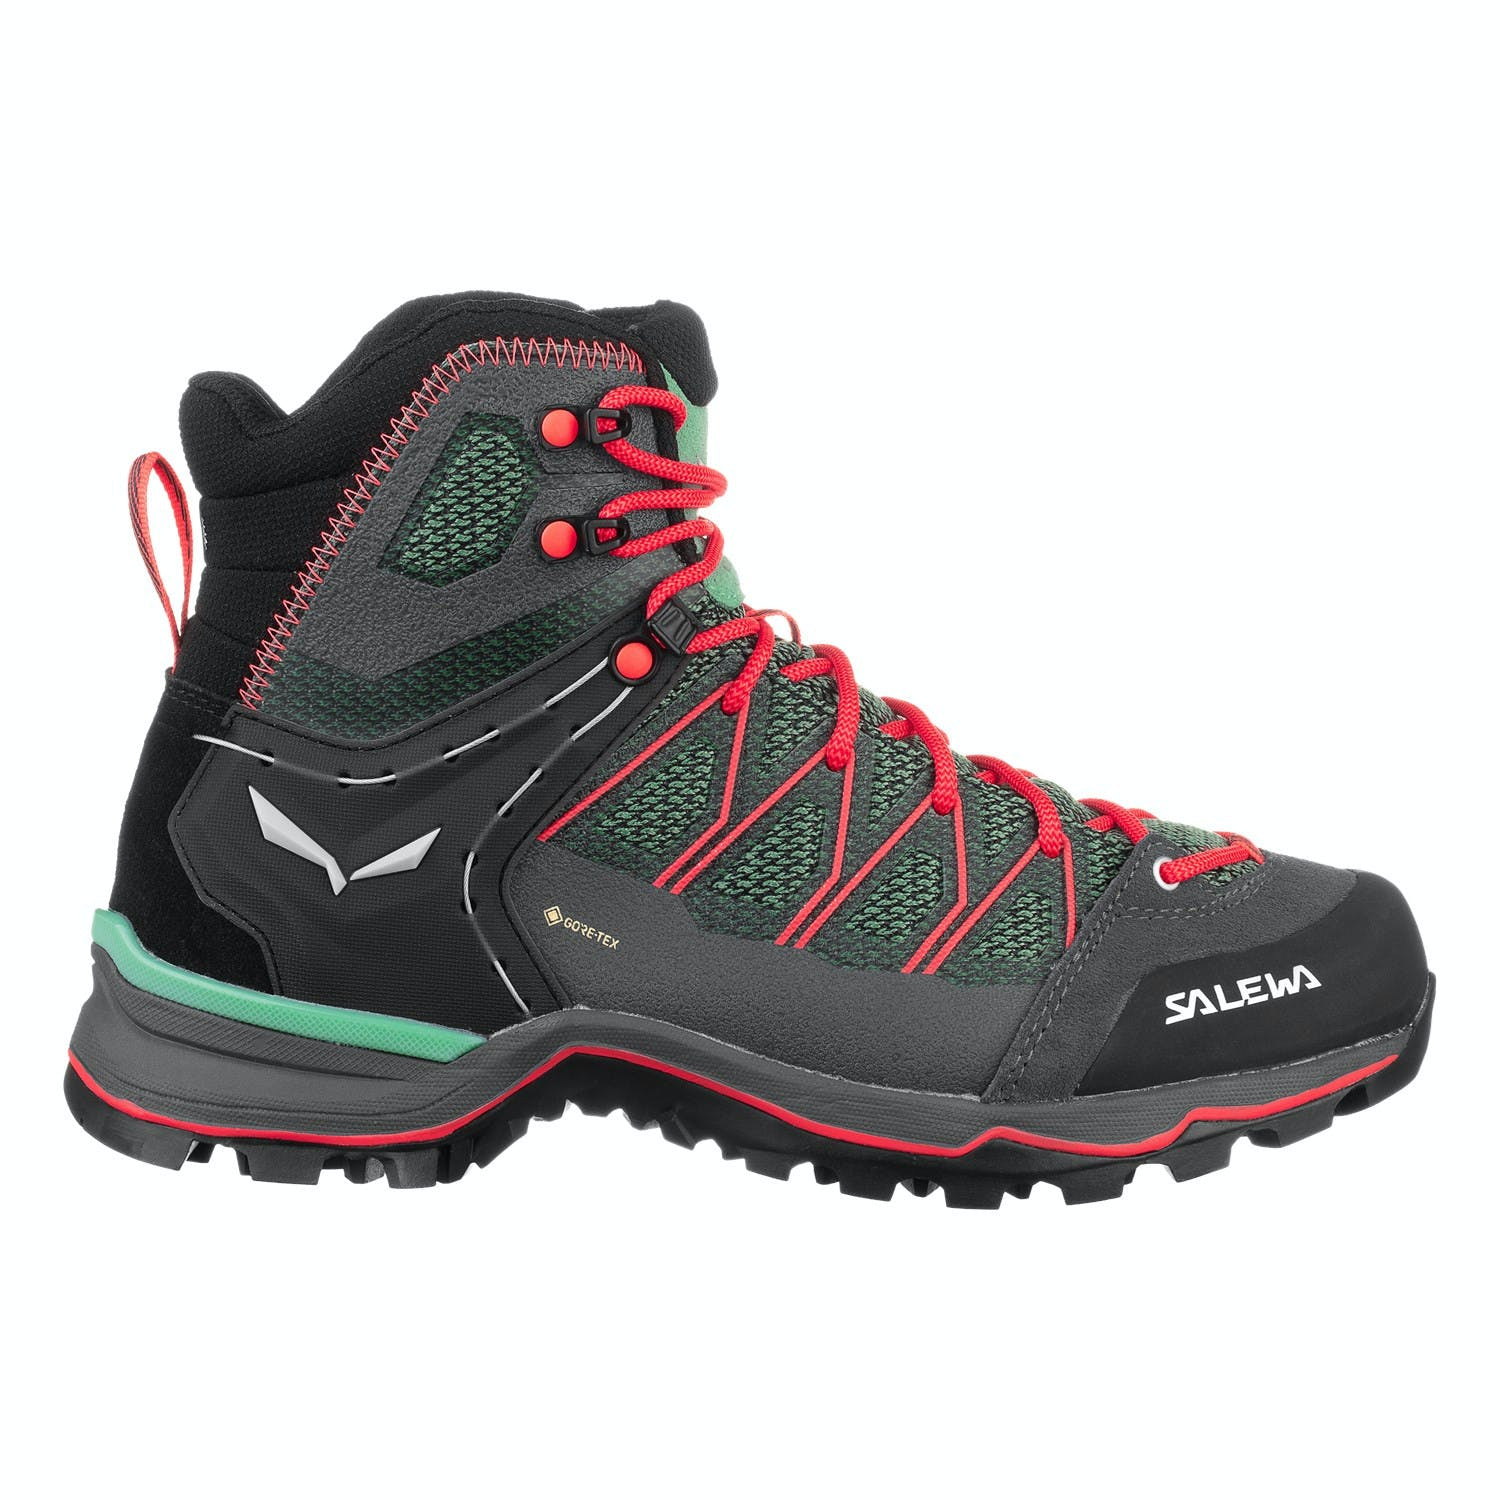 Salewa Mountain Trainer Lite Mid GTX Women's Shoes in Field Green/Fluorescent Coral, Size 6